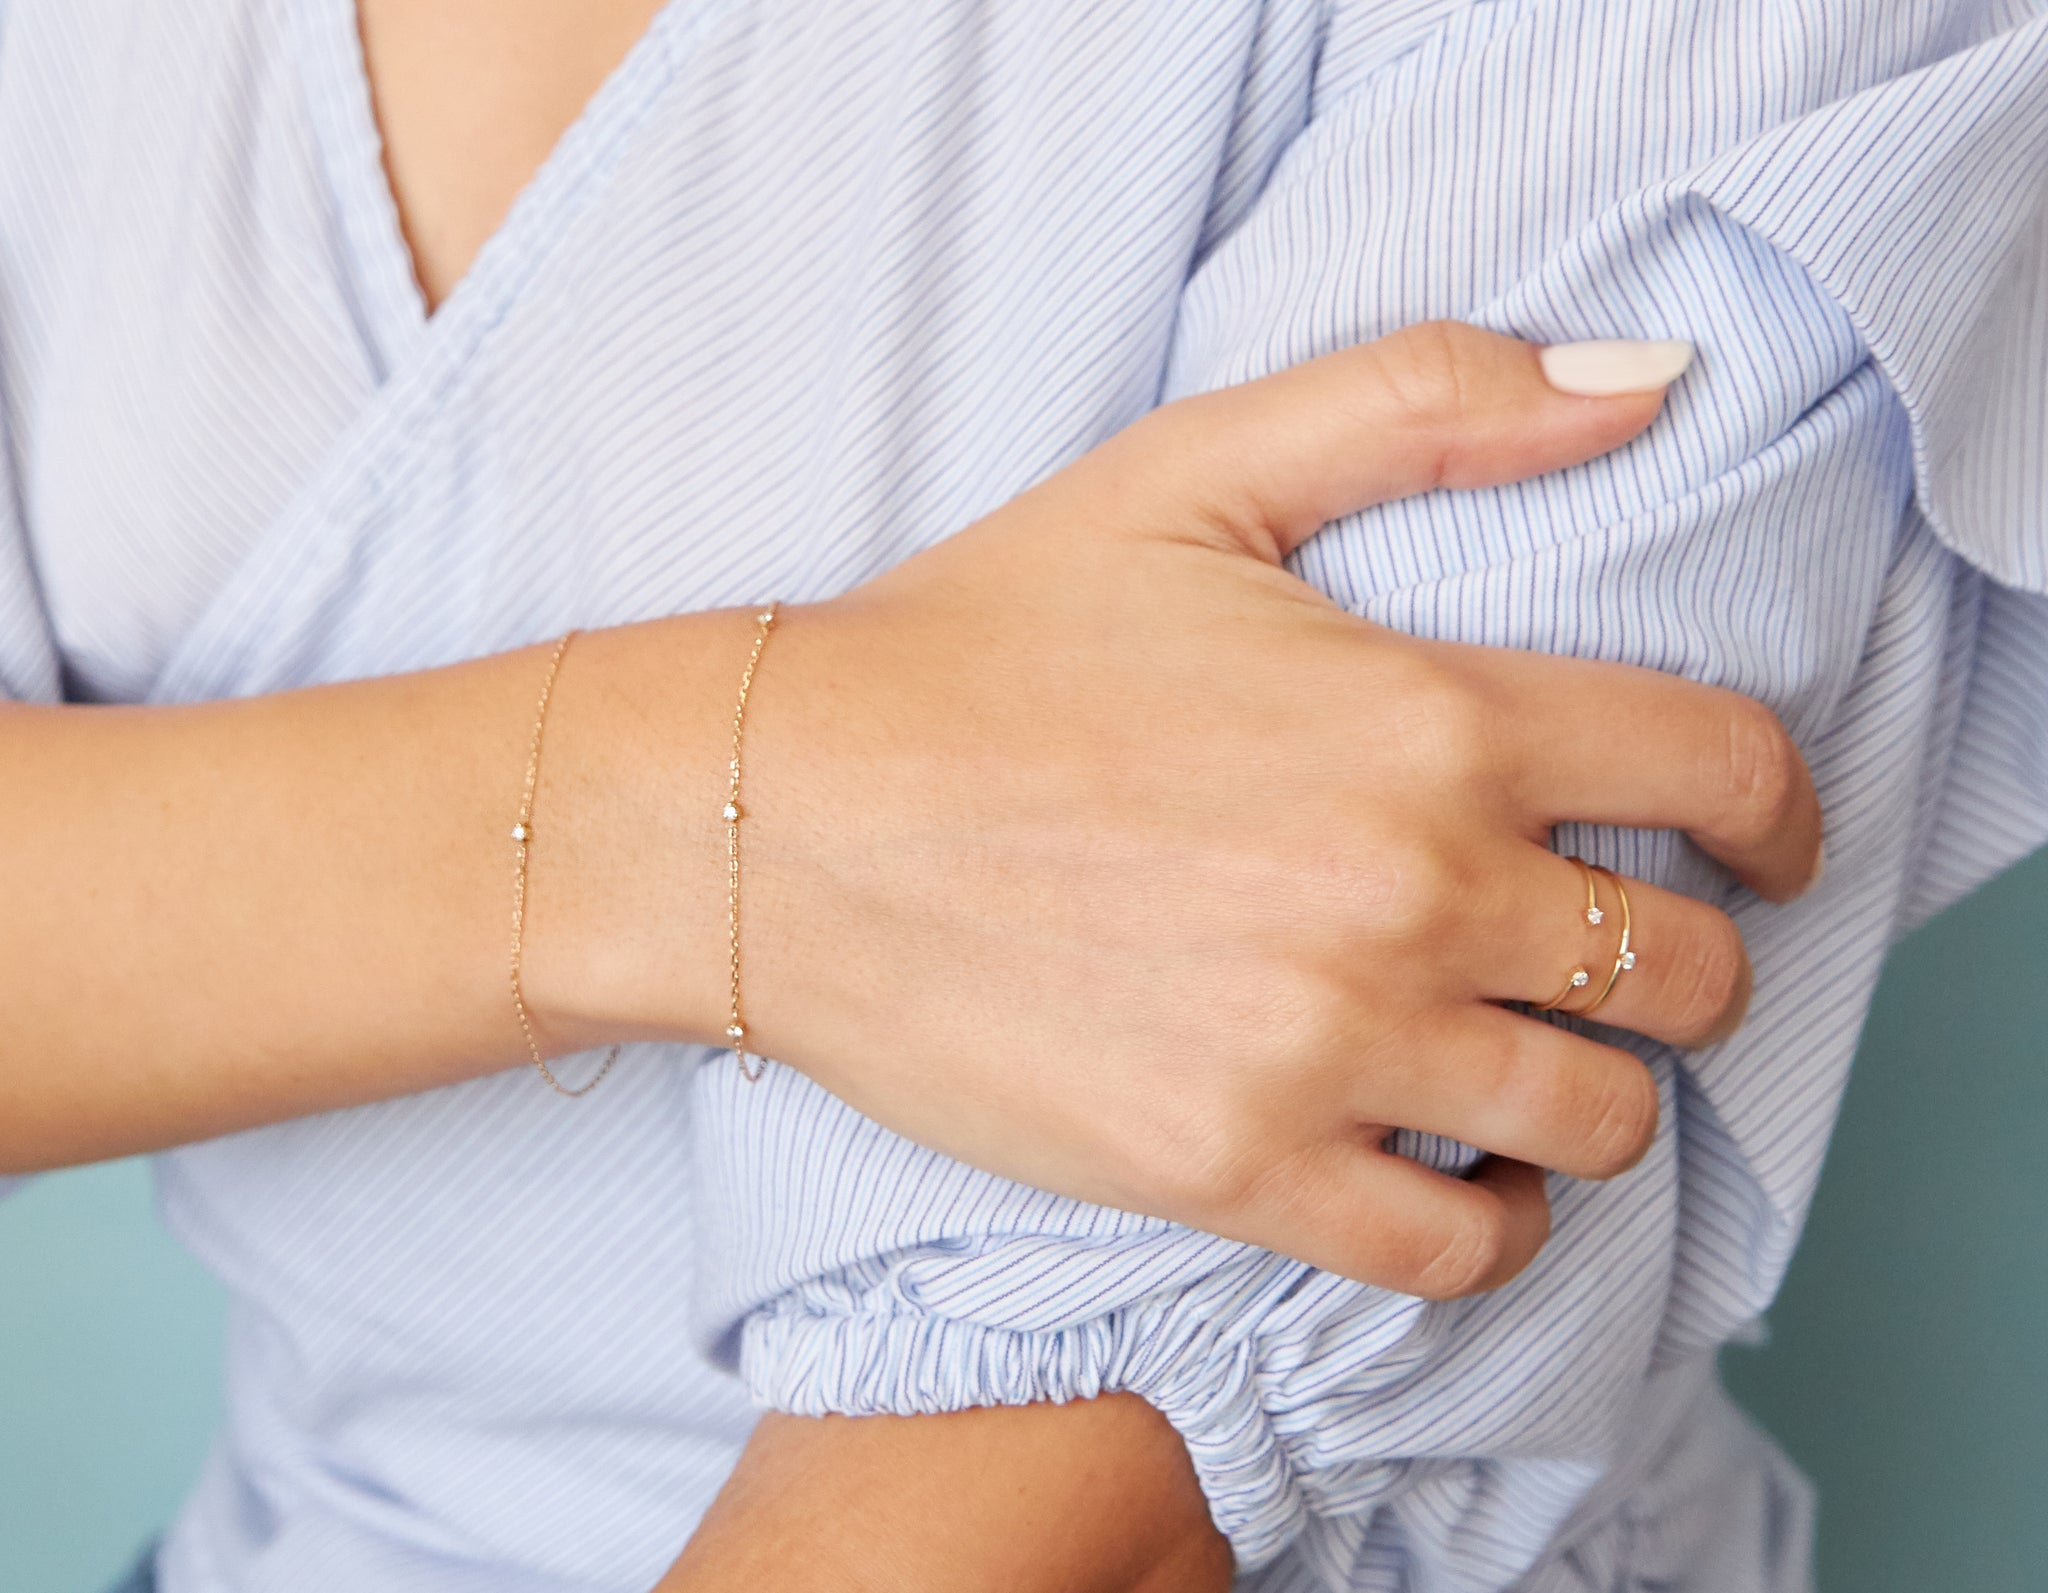 Woman modeling Vrai dainty Tiny Diamond Bracelet